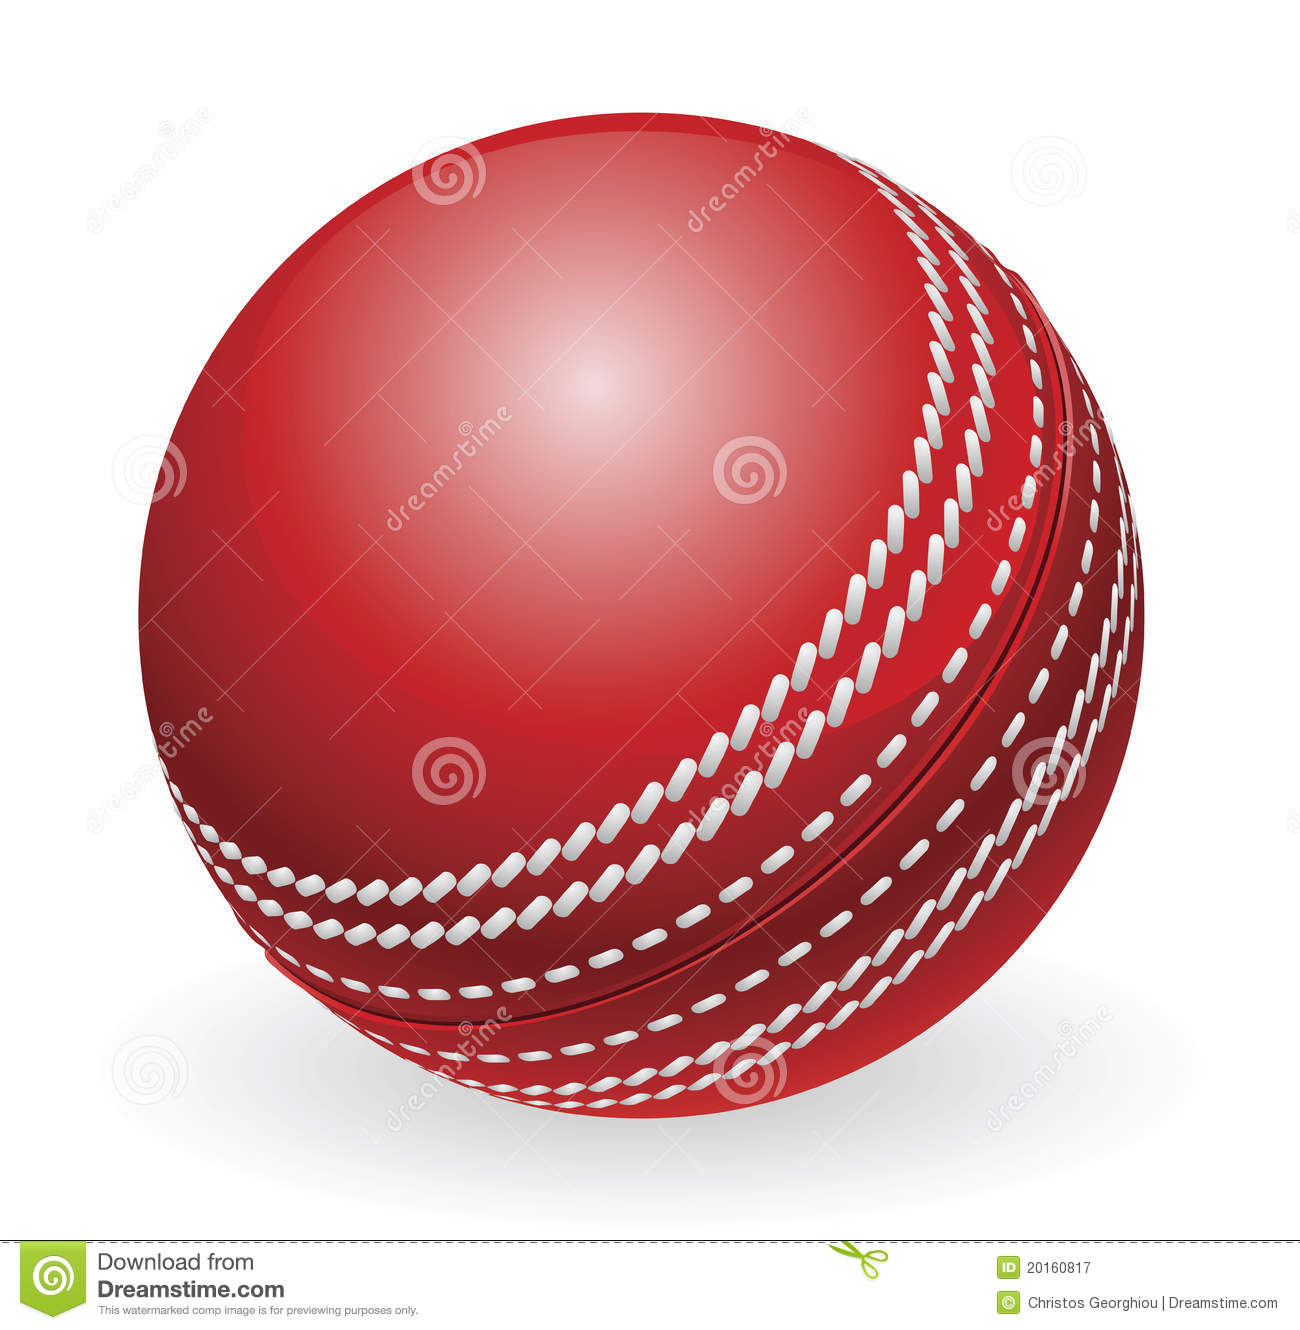 Bille de cricket traditionnelle rouge brillante